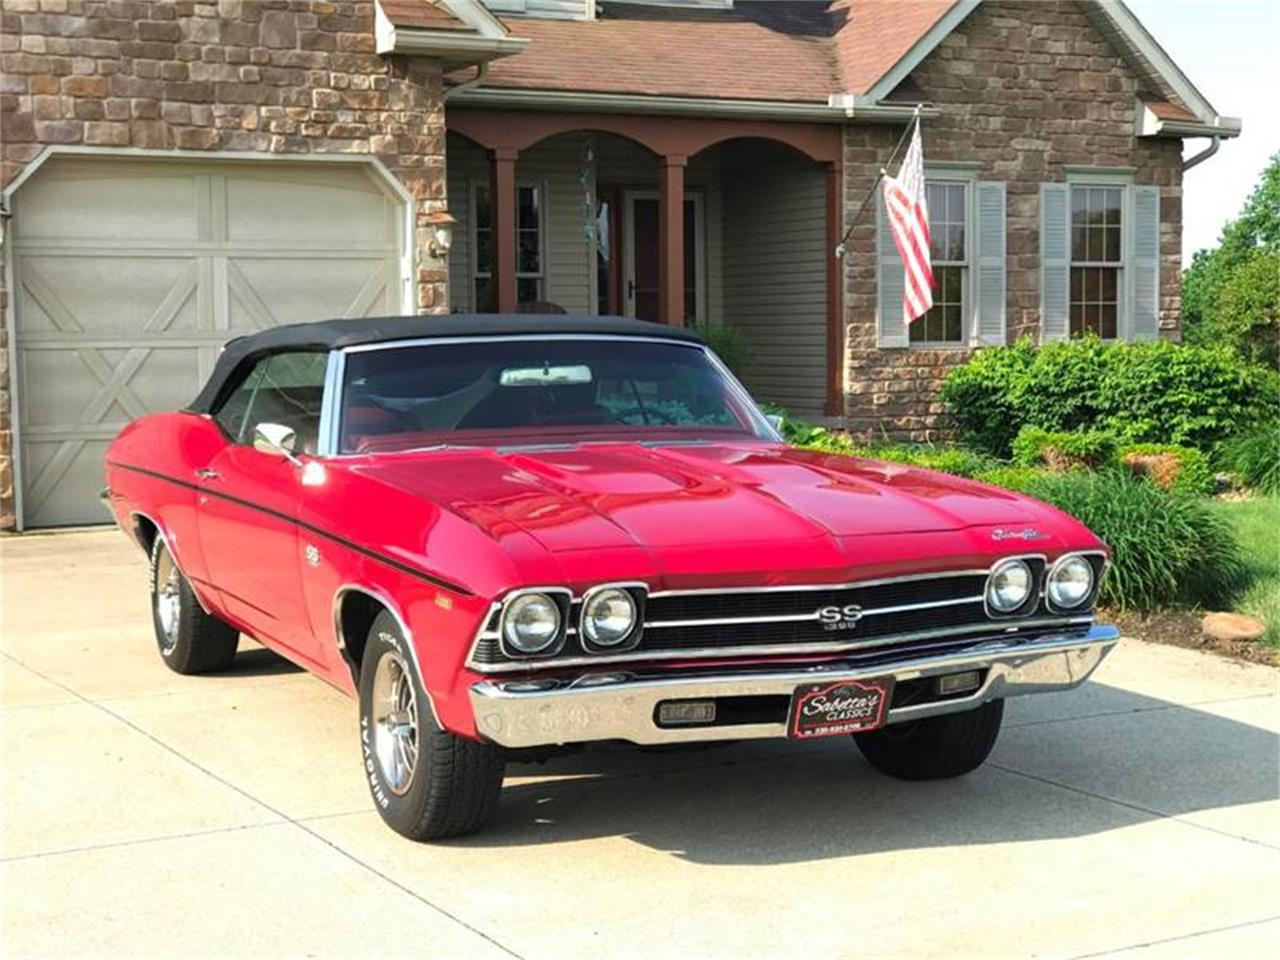 Large Picture of Classic '69 Chevrolet Chevelle SS located in Ohio - $42,000.00 Offered by Sabettas Classics, LLC - QEX0